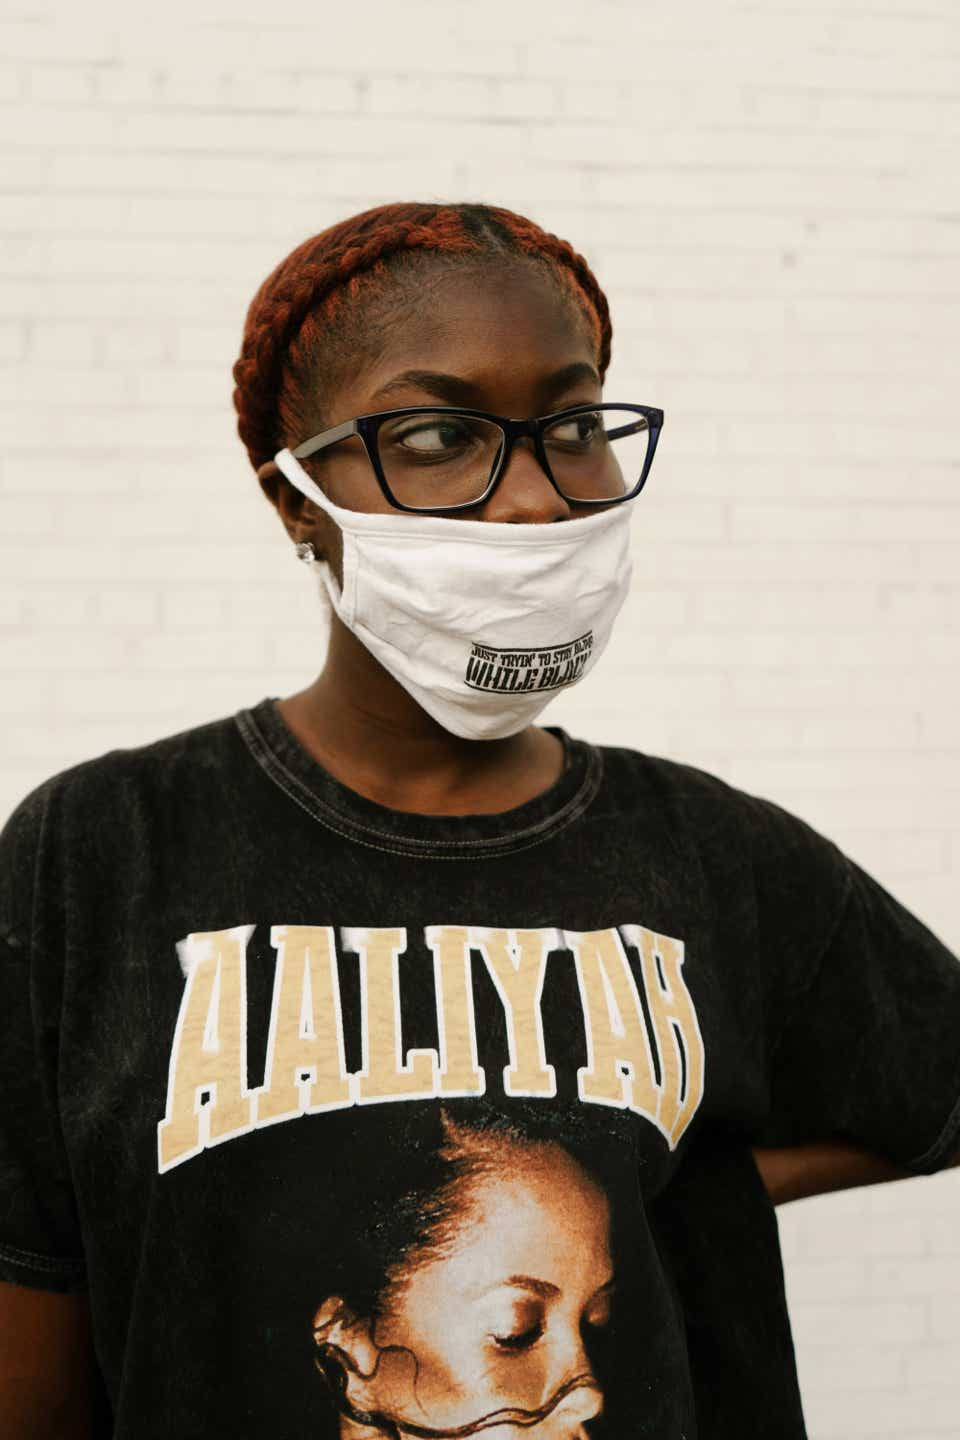 """Jewelle is looking to the side while wearing black-rimmed eyeglasses, a white mask, and a T-shirt that says, """"Aaliyah"""" on it, with a picture of the late singer on the front."""